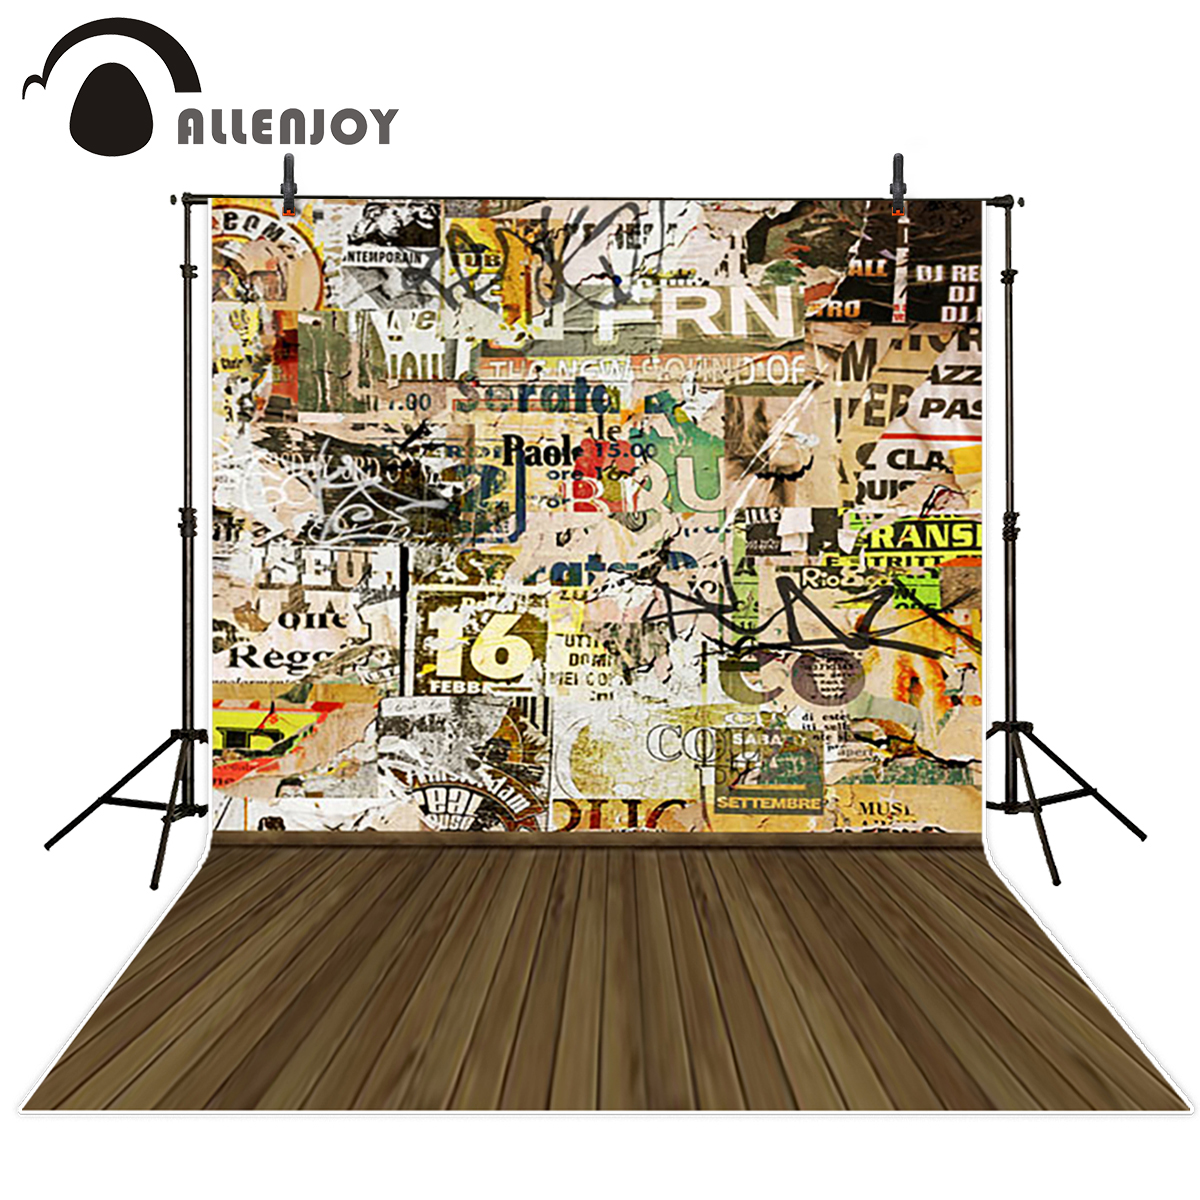 Allenjoy Graffiti wall wood floor photography backdrops street newborns baby shower background photo studio photocall props allenjoy photography backdrop brick wall wooden floor white baby shower children background photo studio photocall